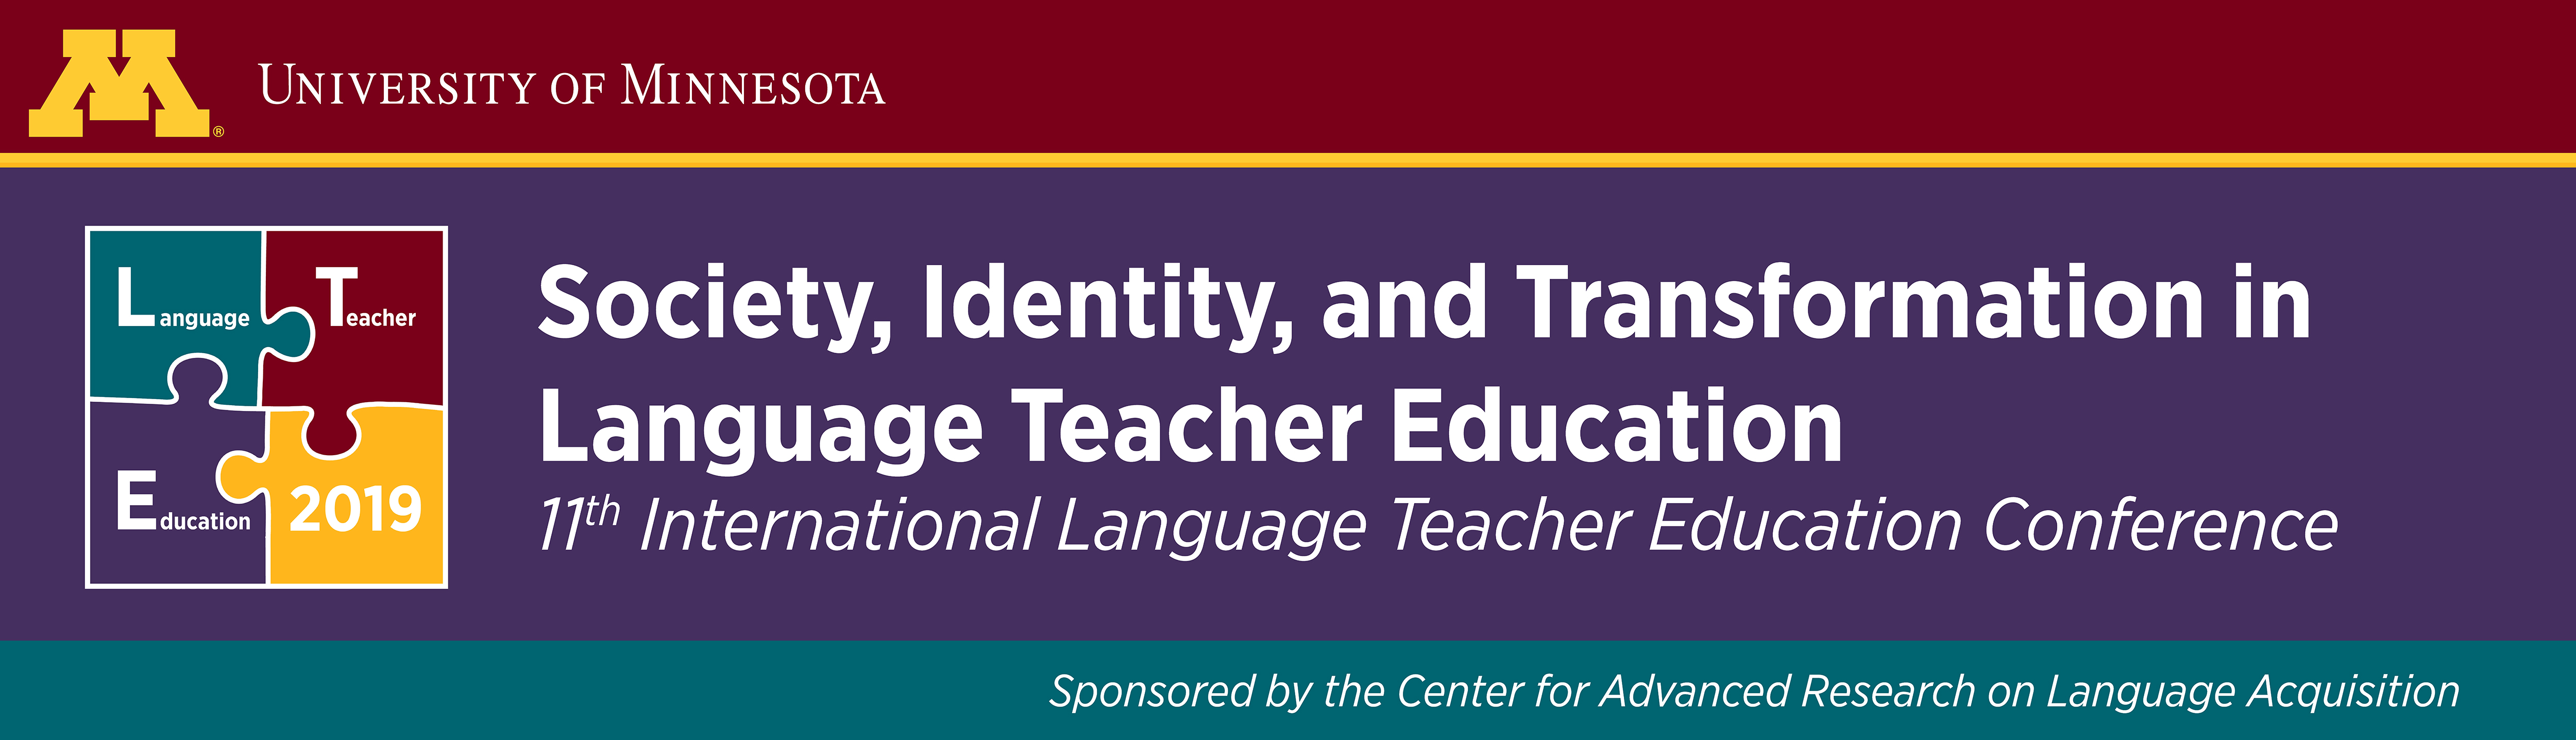 11th International Language Teacher Education Conference sponsored by the Center for Advanced Research on Language Acquisition